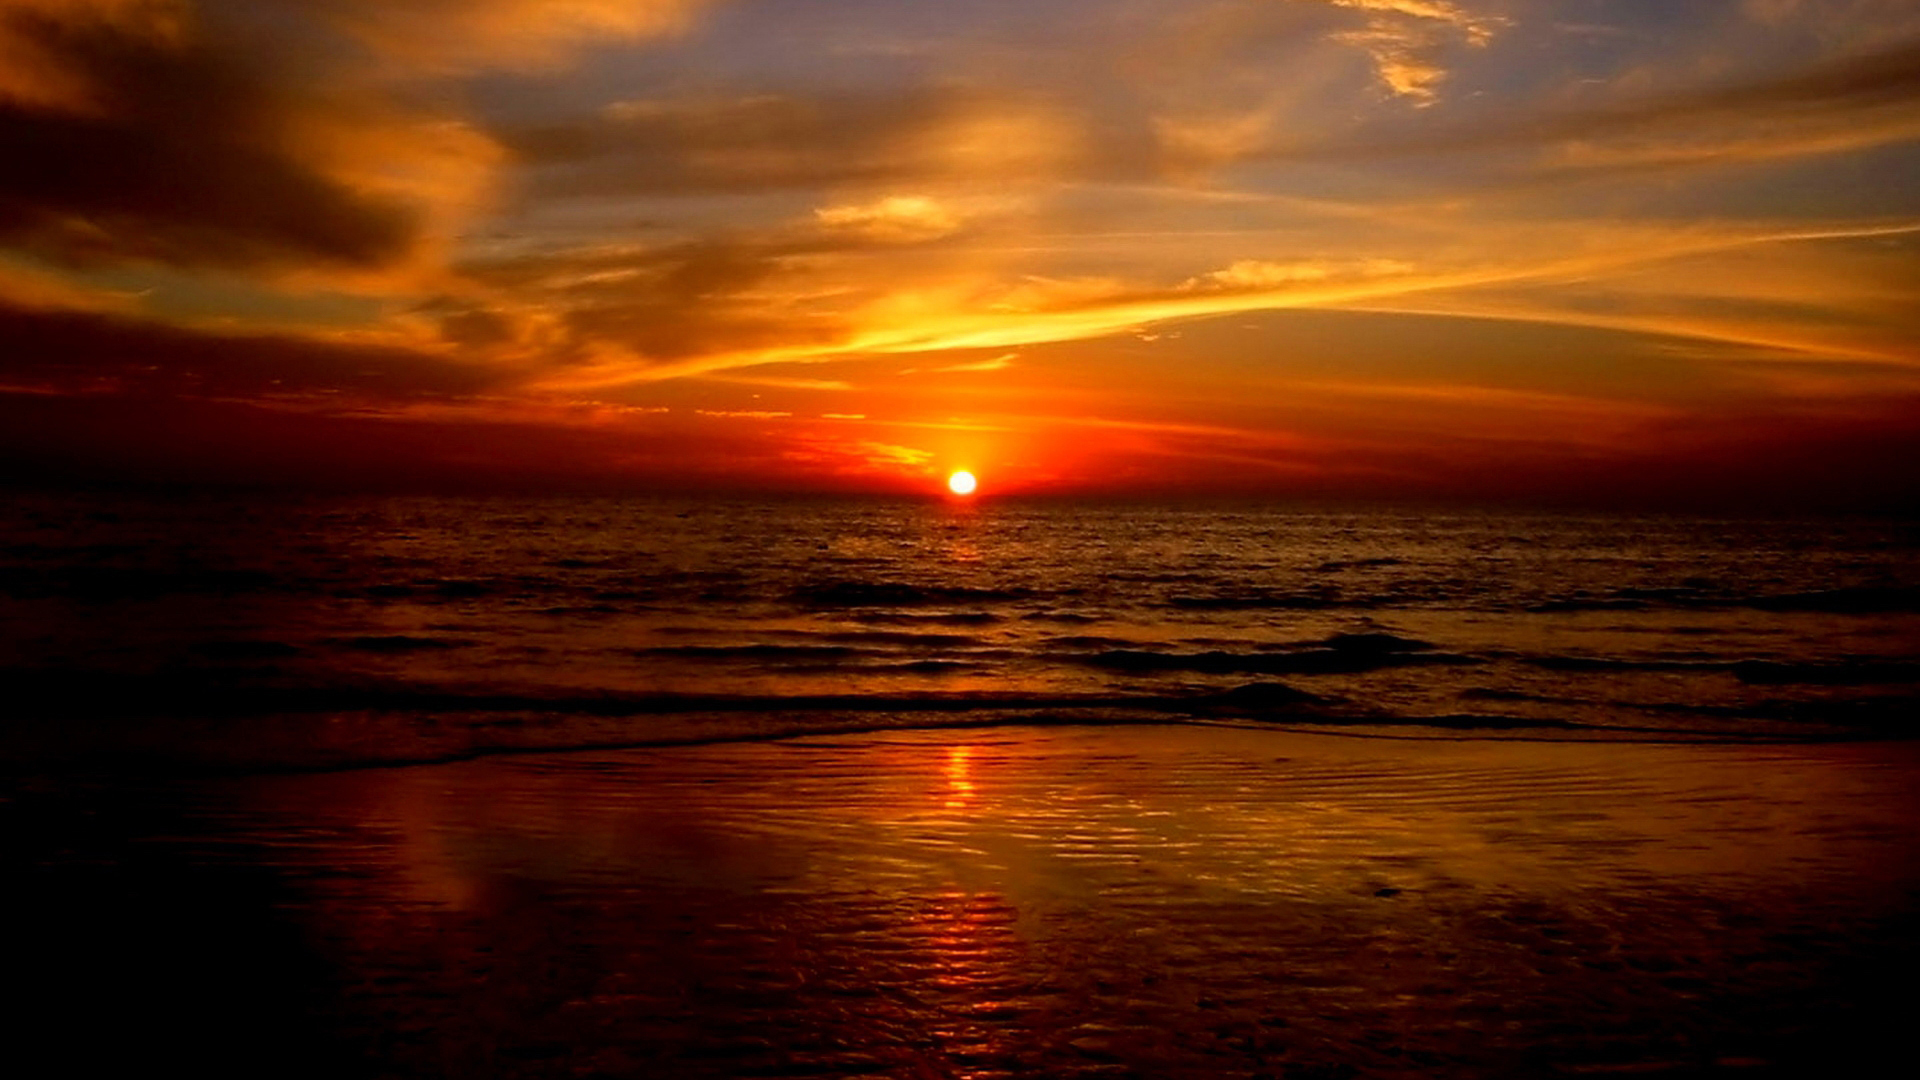 Beautiful Ocean Sunset Wallpaper for PC Full HD Pictures 1920x1080